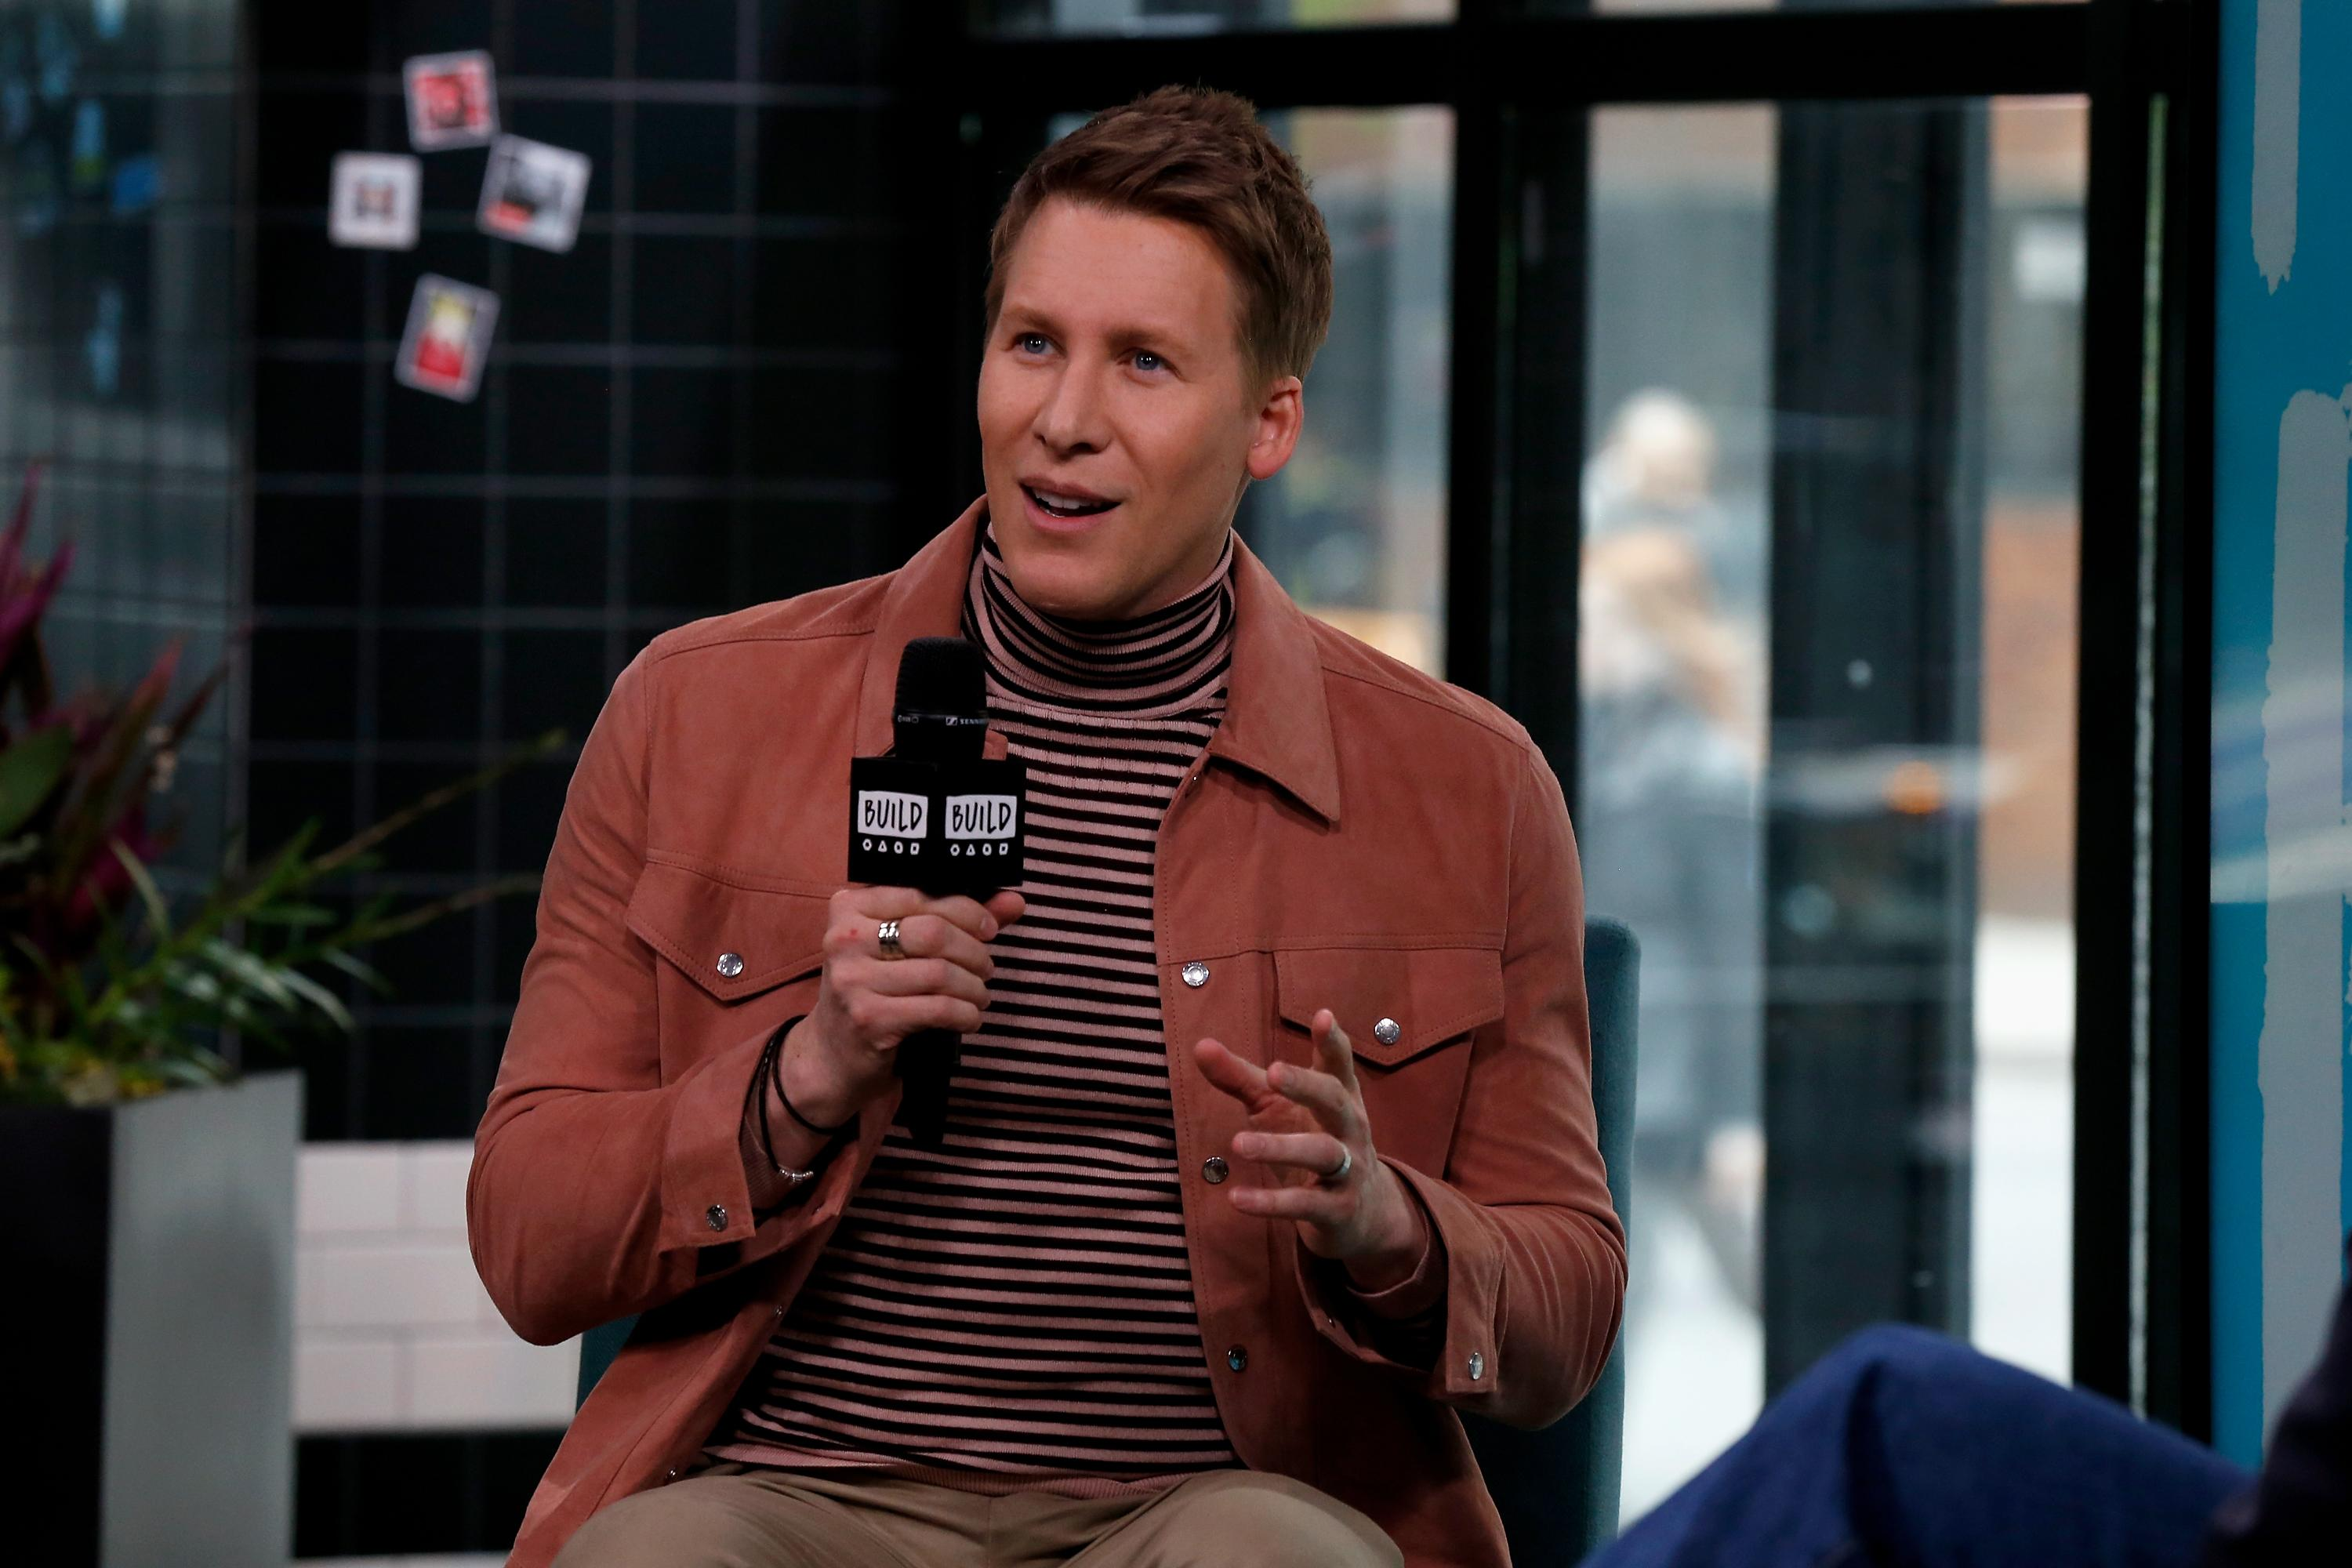 NEW YORK, NEW YORK - APRIL 30: Dustin Lance Black attends the Build Series to discuss 'Mama's Boy: A Story from Our Americas' at Build Studio on April 30, 2019 in New York City. (Photo by Dominik Bindl/Getty Images)